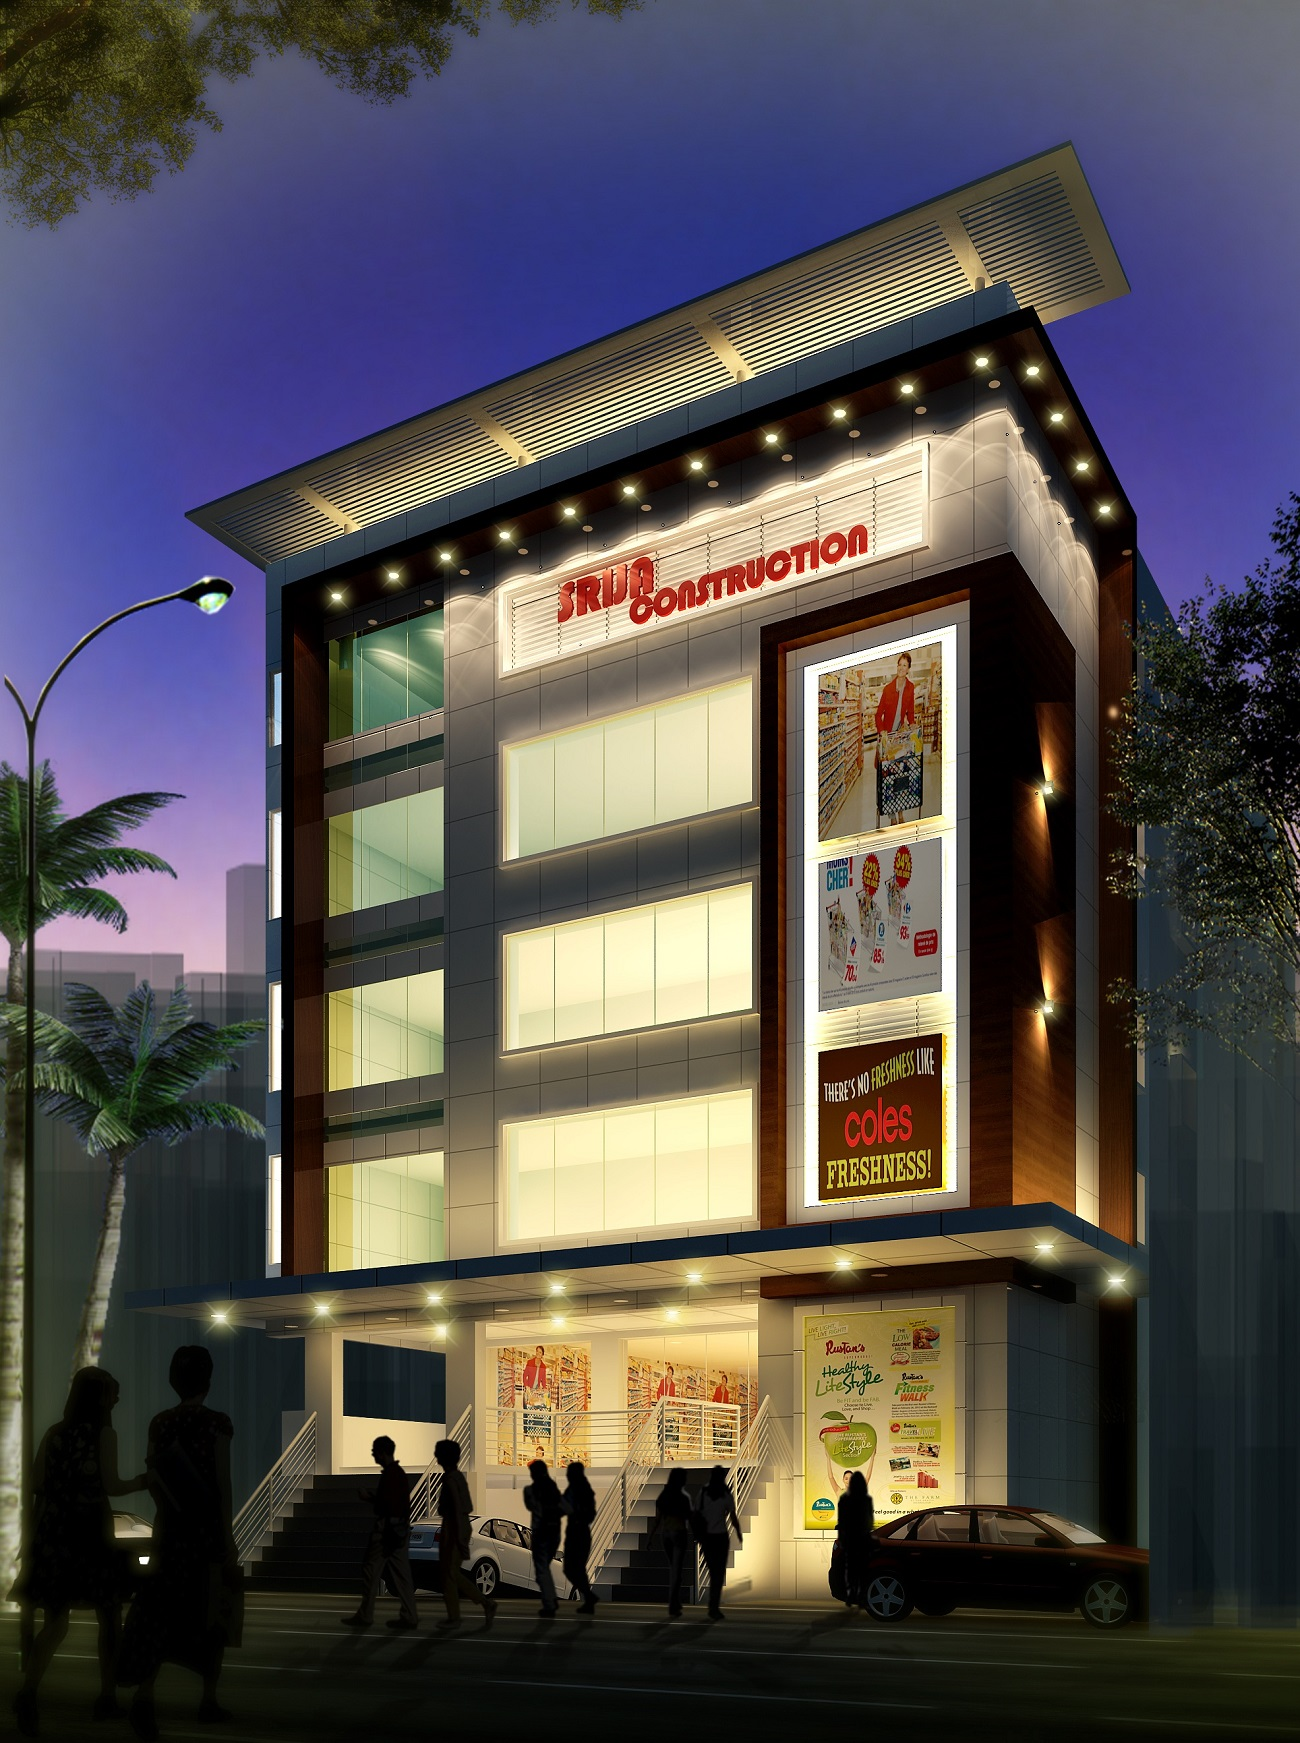 ar-concepts-svss-varma-commercial-elevation-image-c